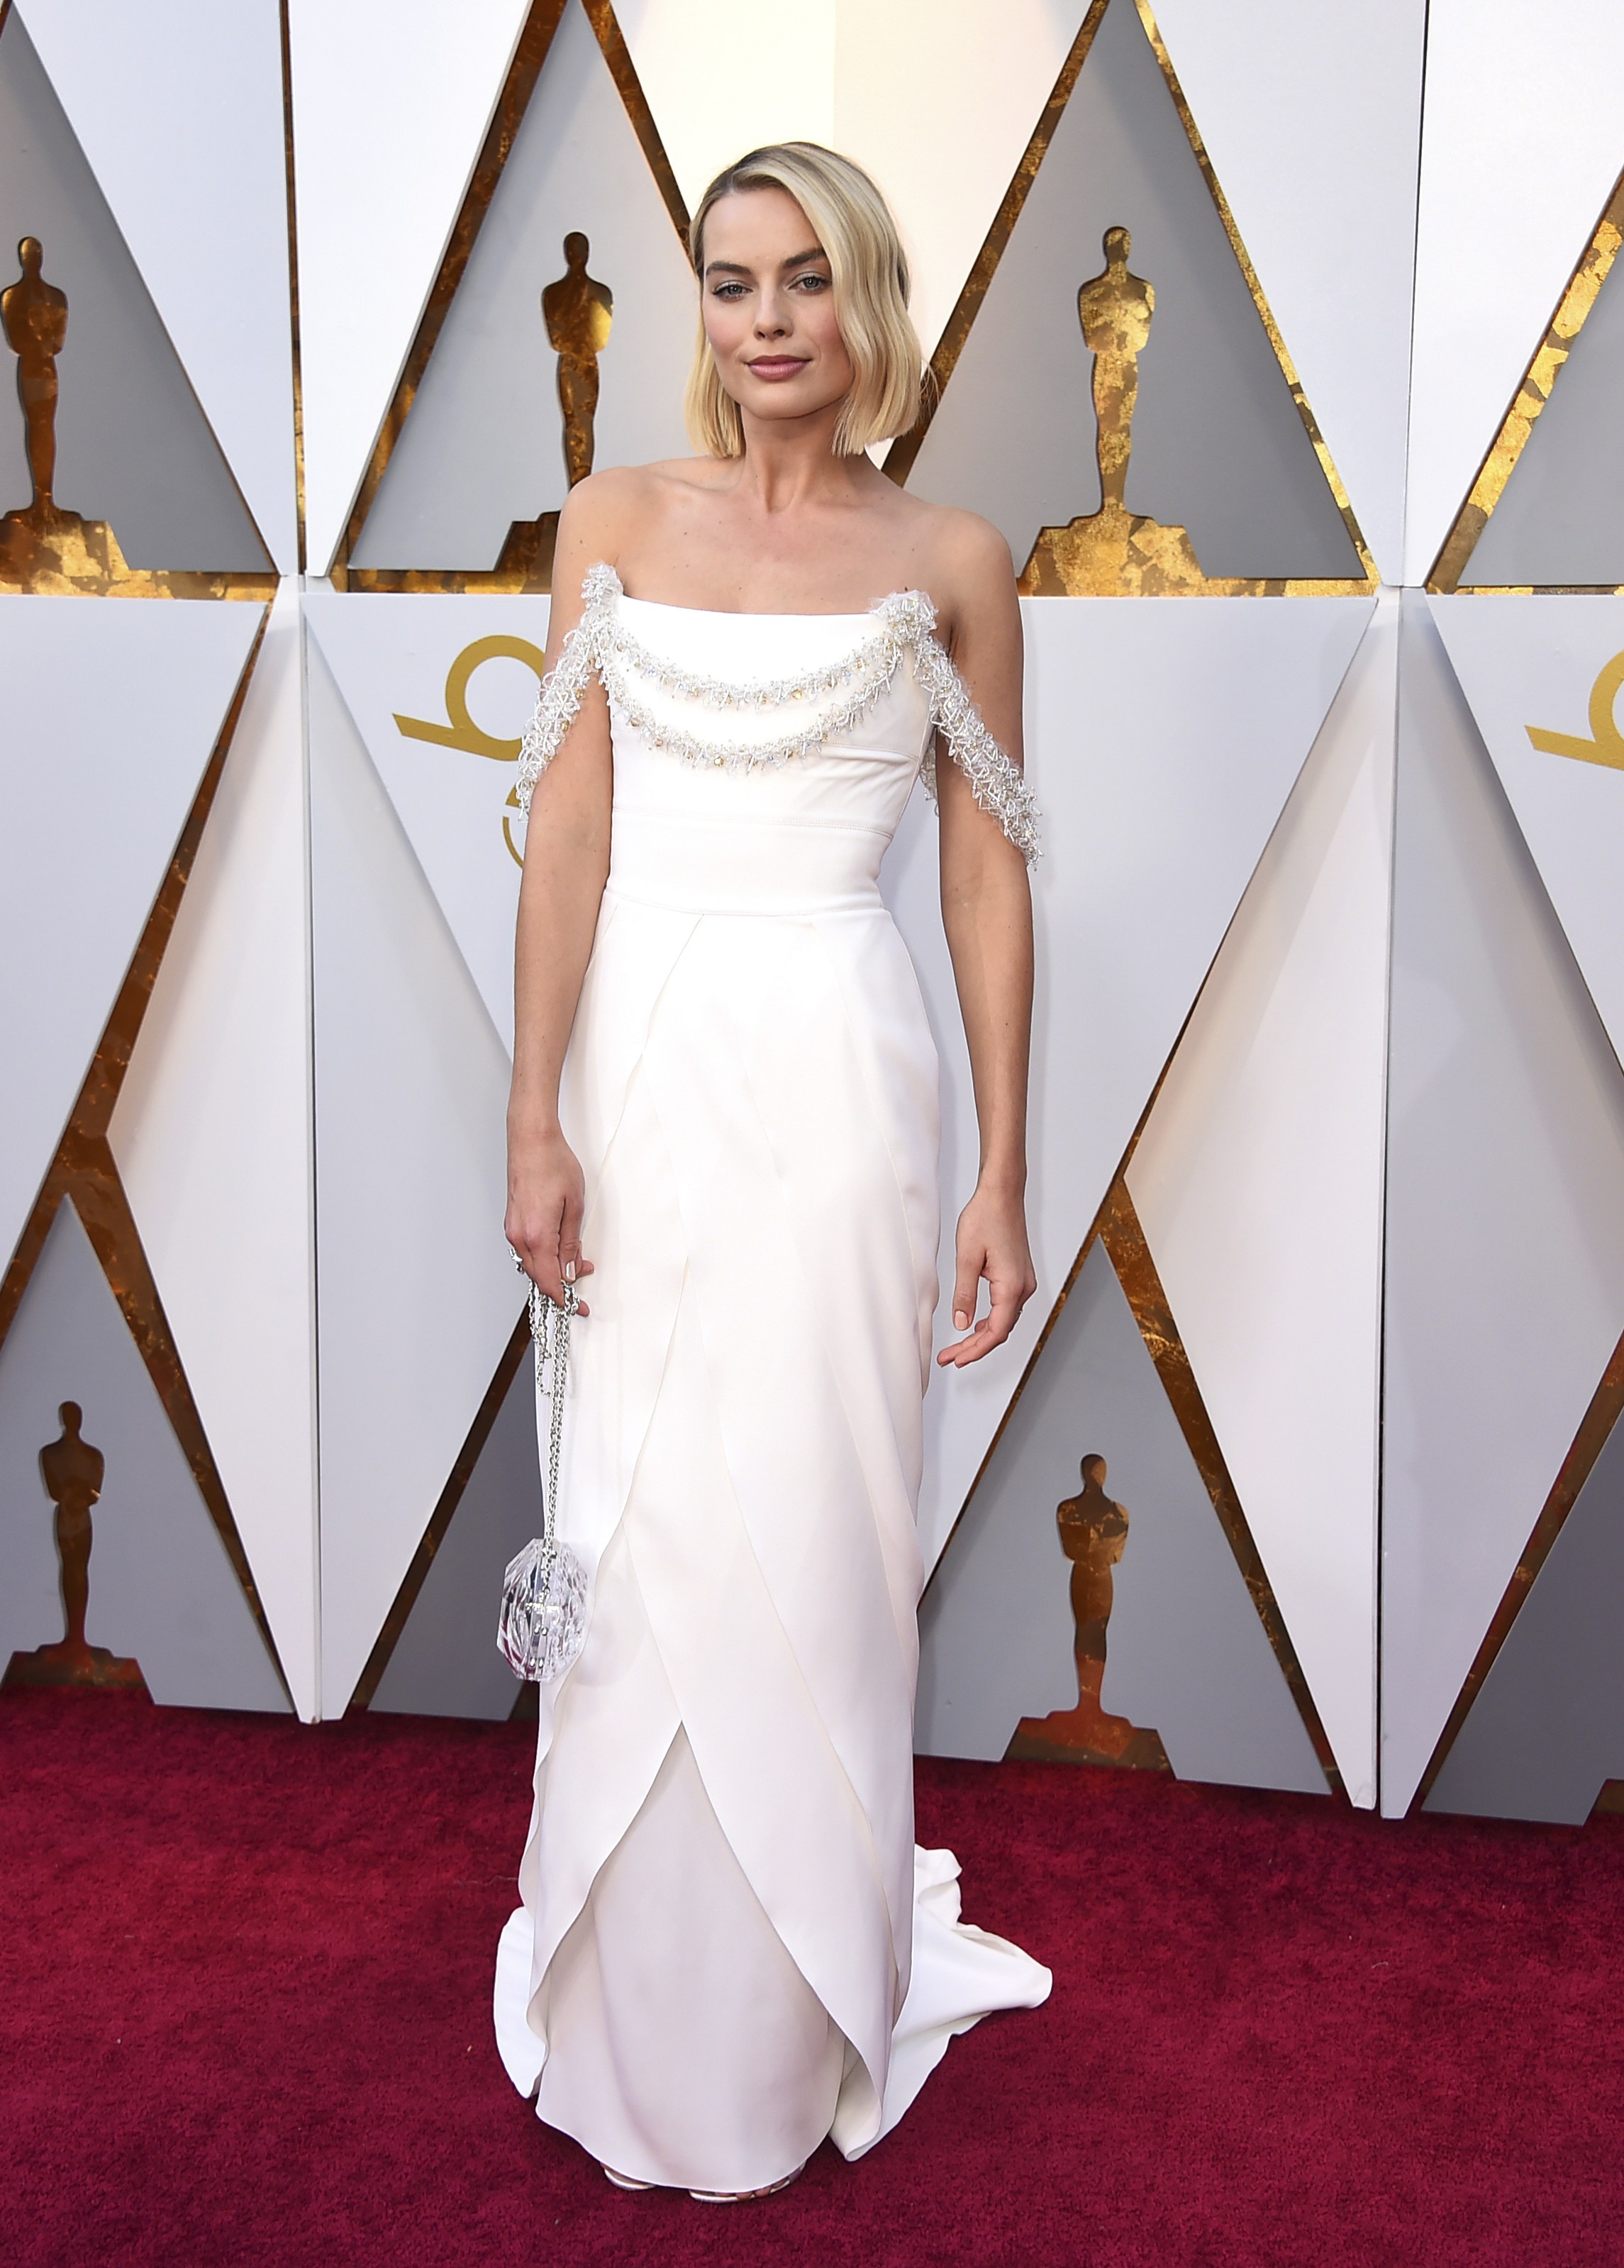 "<div class=""meta image-caption""><div class=""origin-logo origin-image none""><span>none</span></div><span class=""caption-text"">Margot Robbie, nominated for Best Actress for ''I, Tonya,'' arrives at the Oscars on Sunday, March 4, 2018, at the Dolby Theatre in Los Angeles. (Jordan Strauss/Invision/AP)</span></div>"